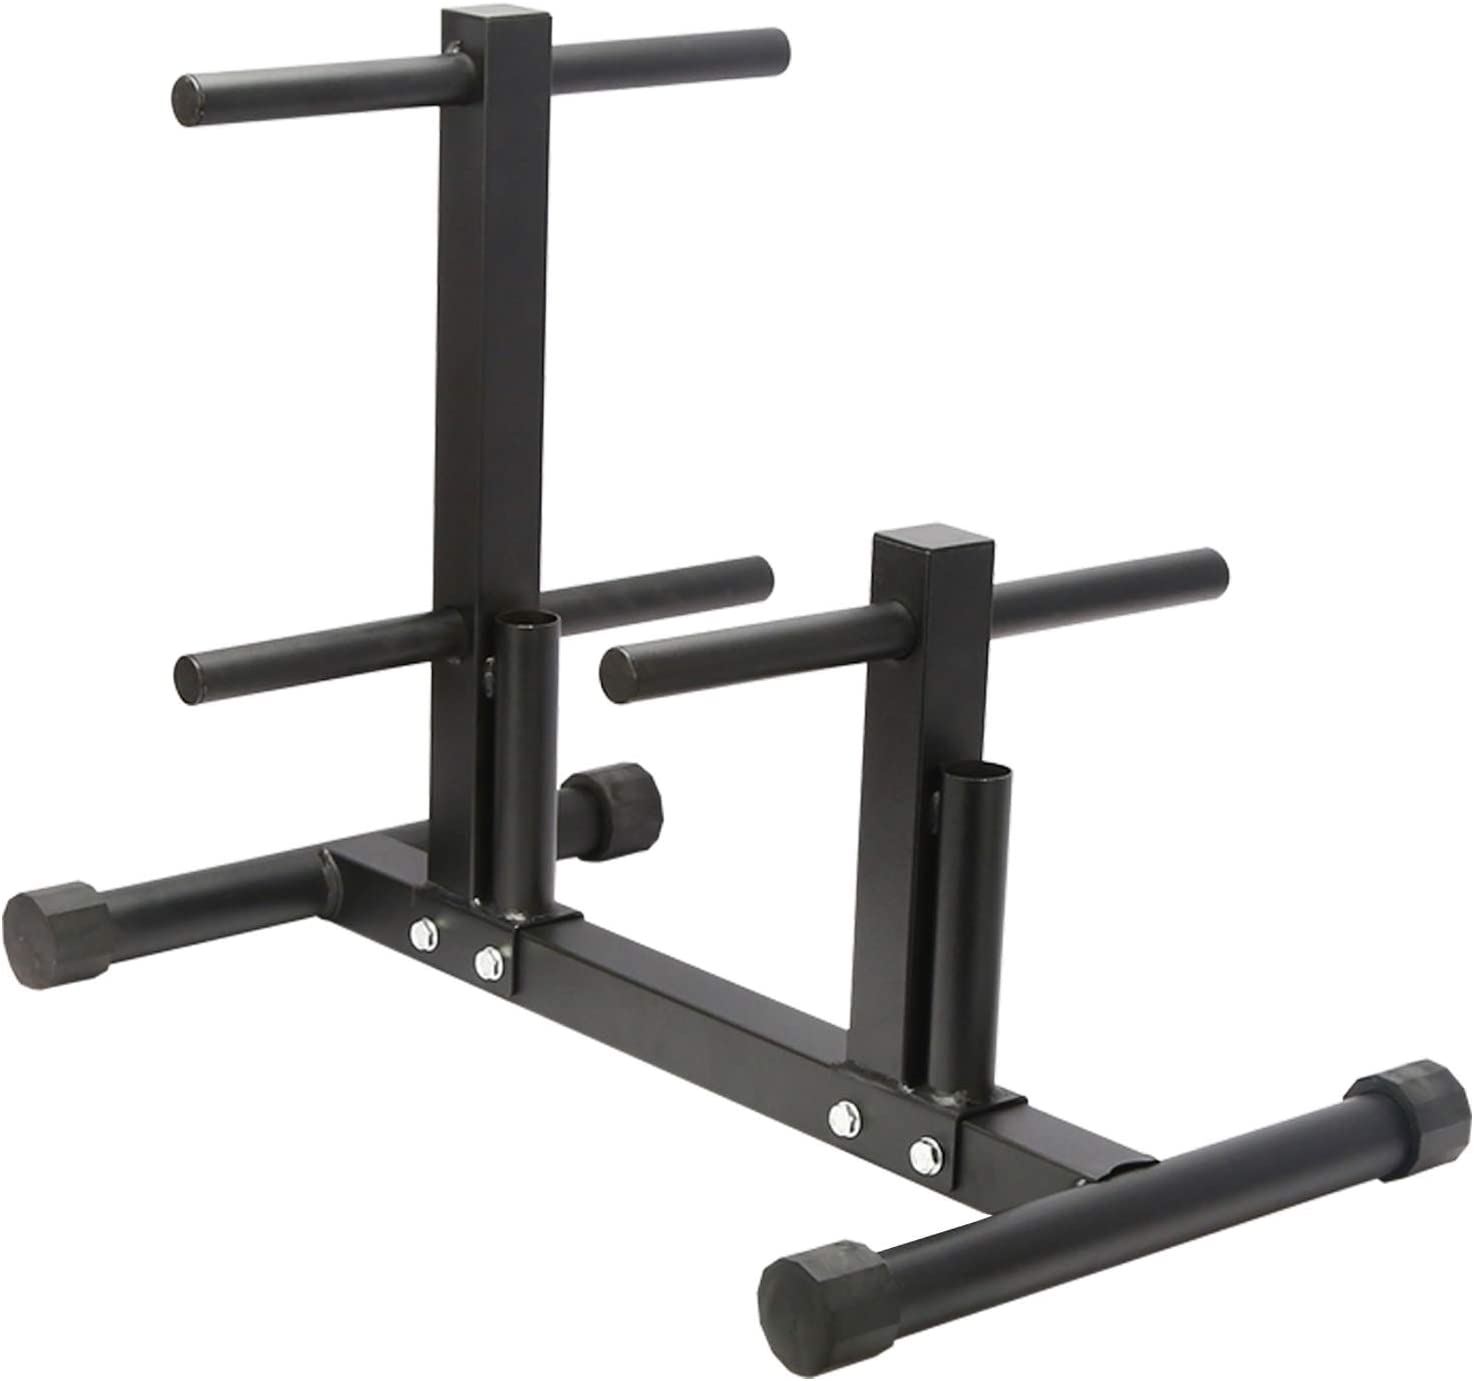 Ibnotuiy 1in Weight Plate Rack Tree for Dumbbell Plates Olympic Free Weight Storage Rack Stand with 2 Standard Bar Holder for Home Gym Maximum Load 440 lb